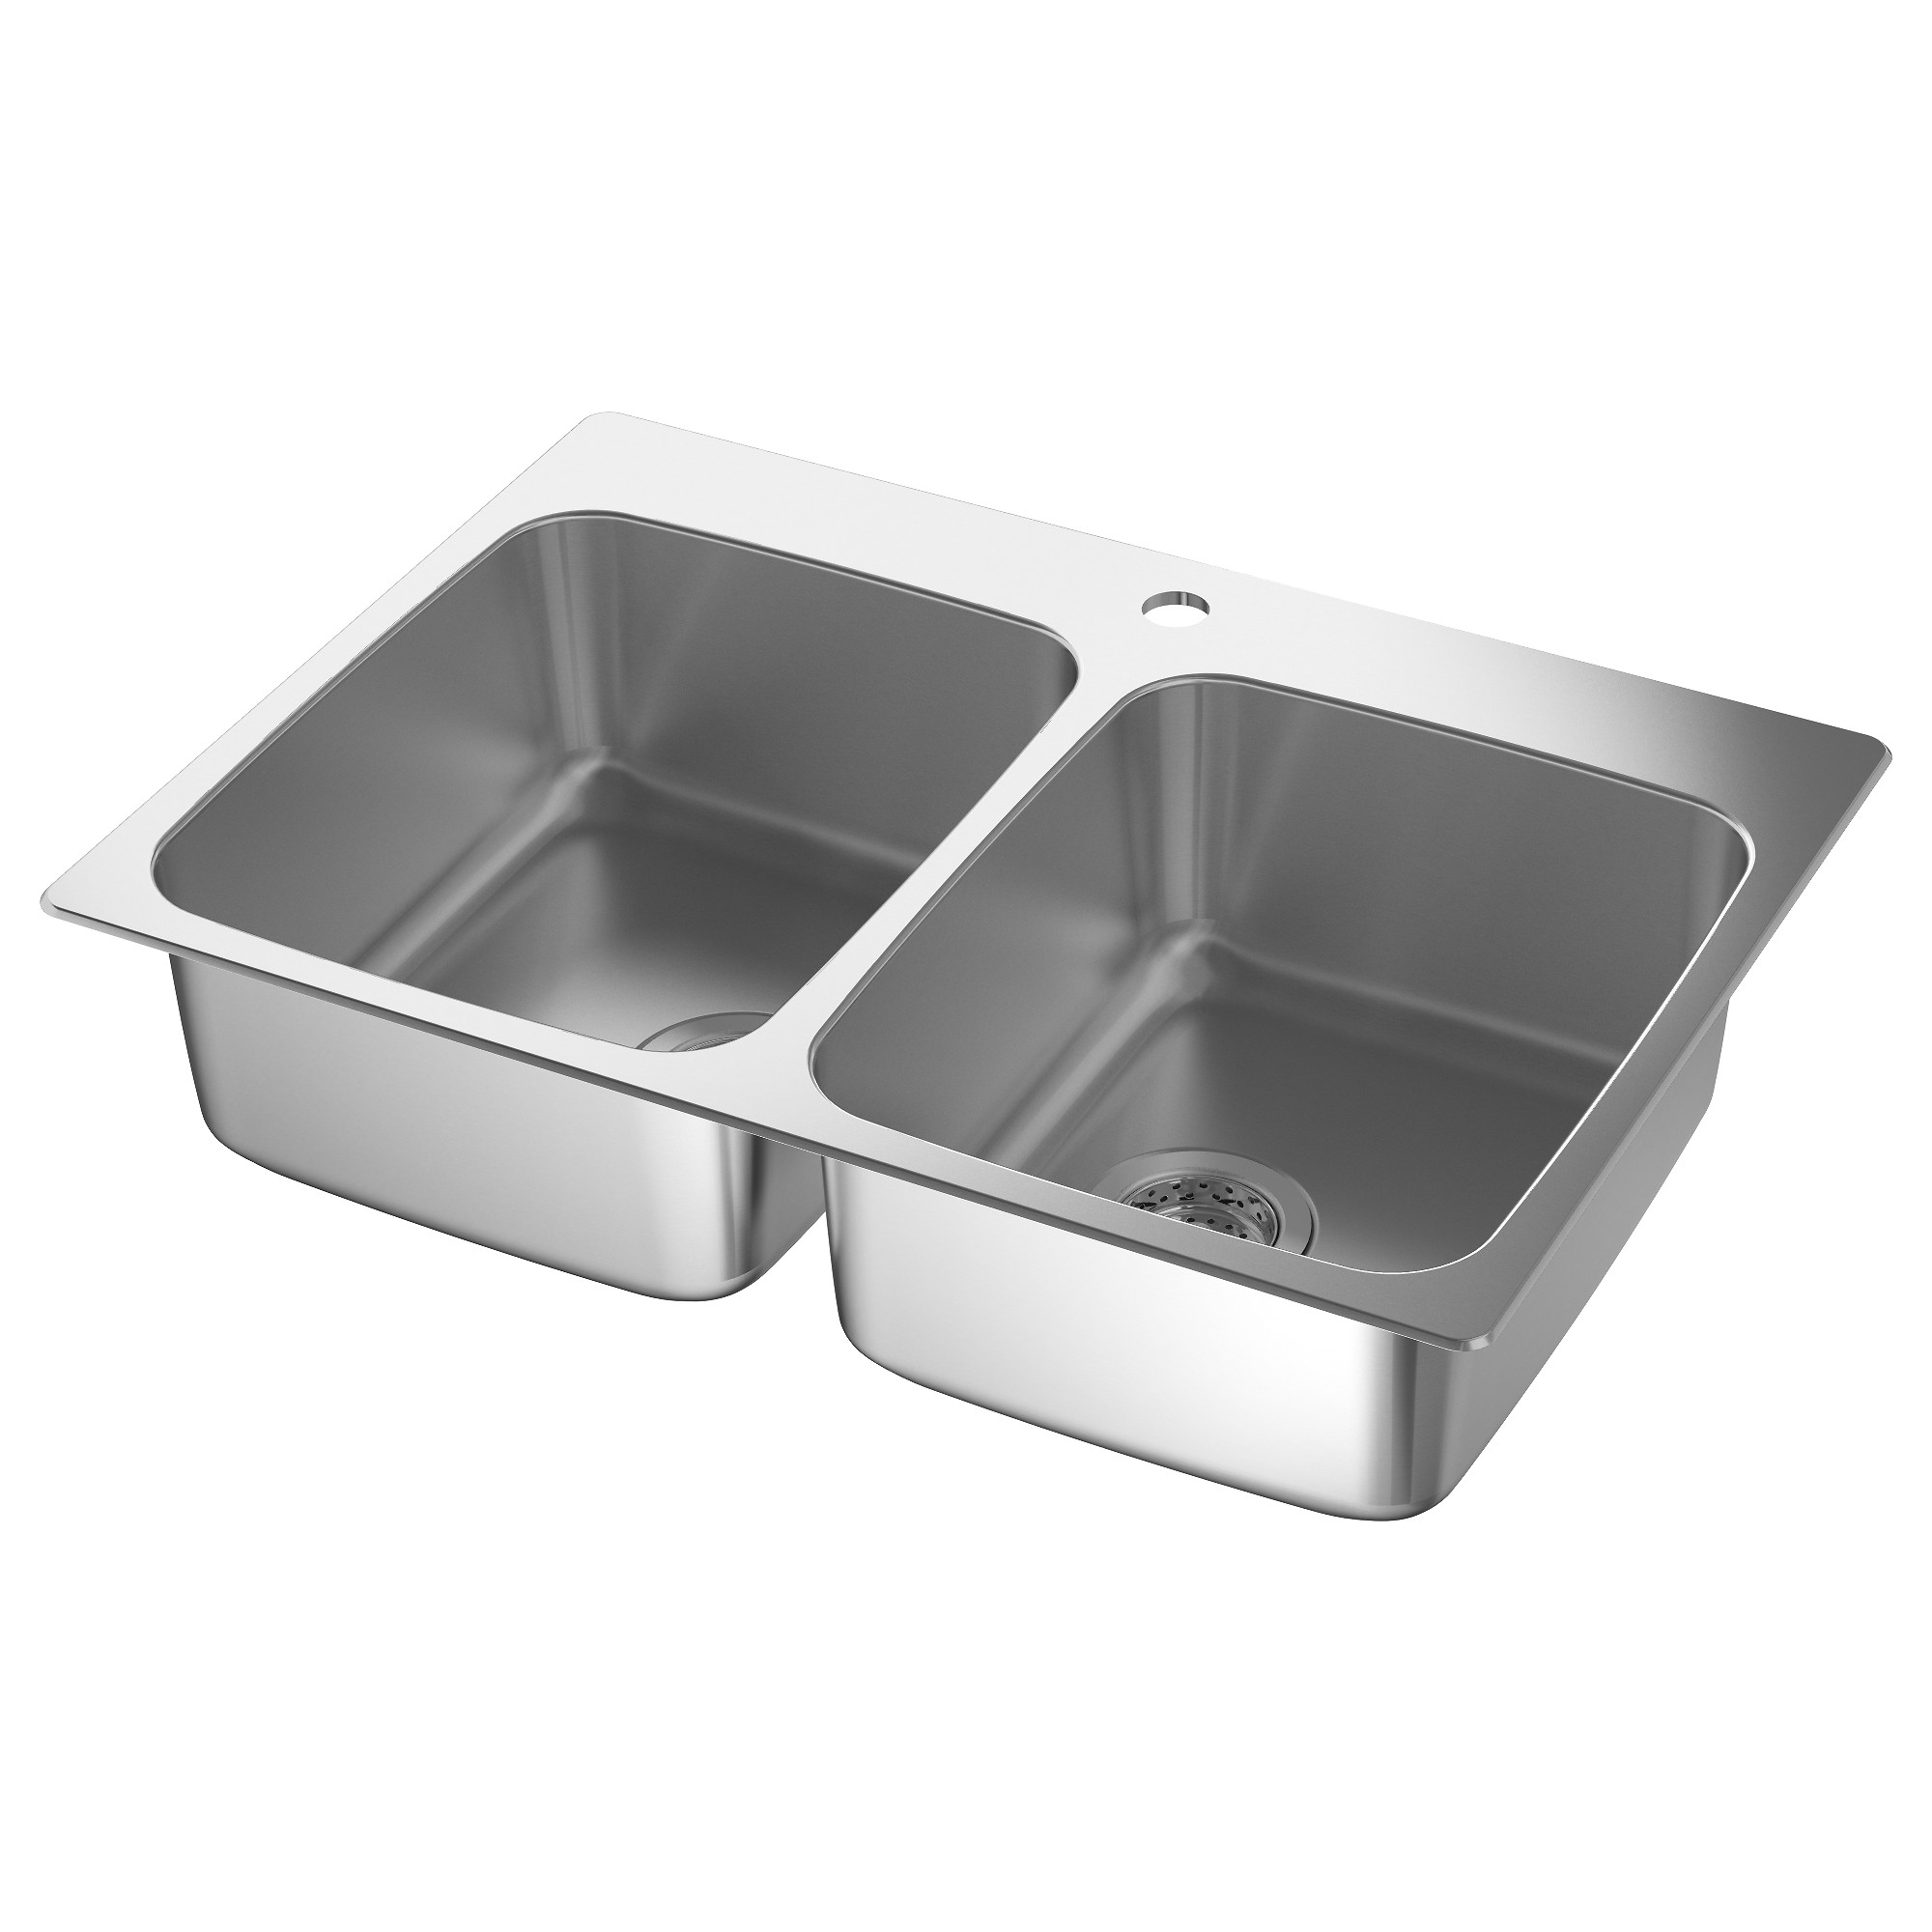 LÅNGUDDEN Double Bowl Top Mount Sink, Stainless Steel Cut Out Measurement  Width: 19